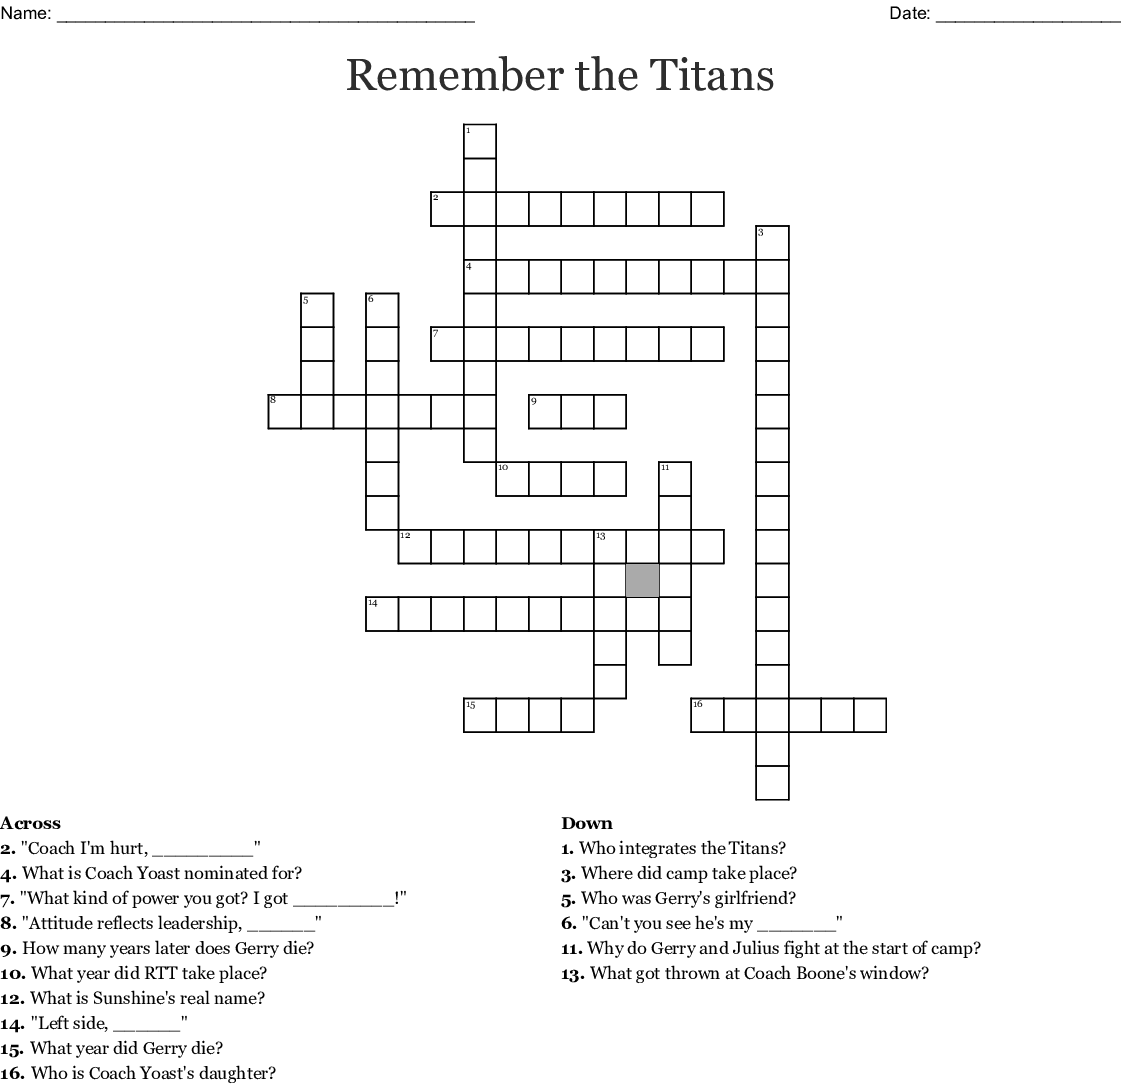 Remember The Titans Word Search